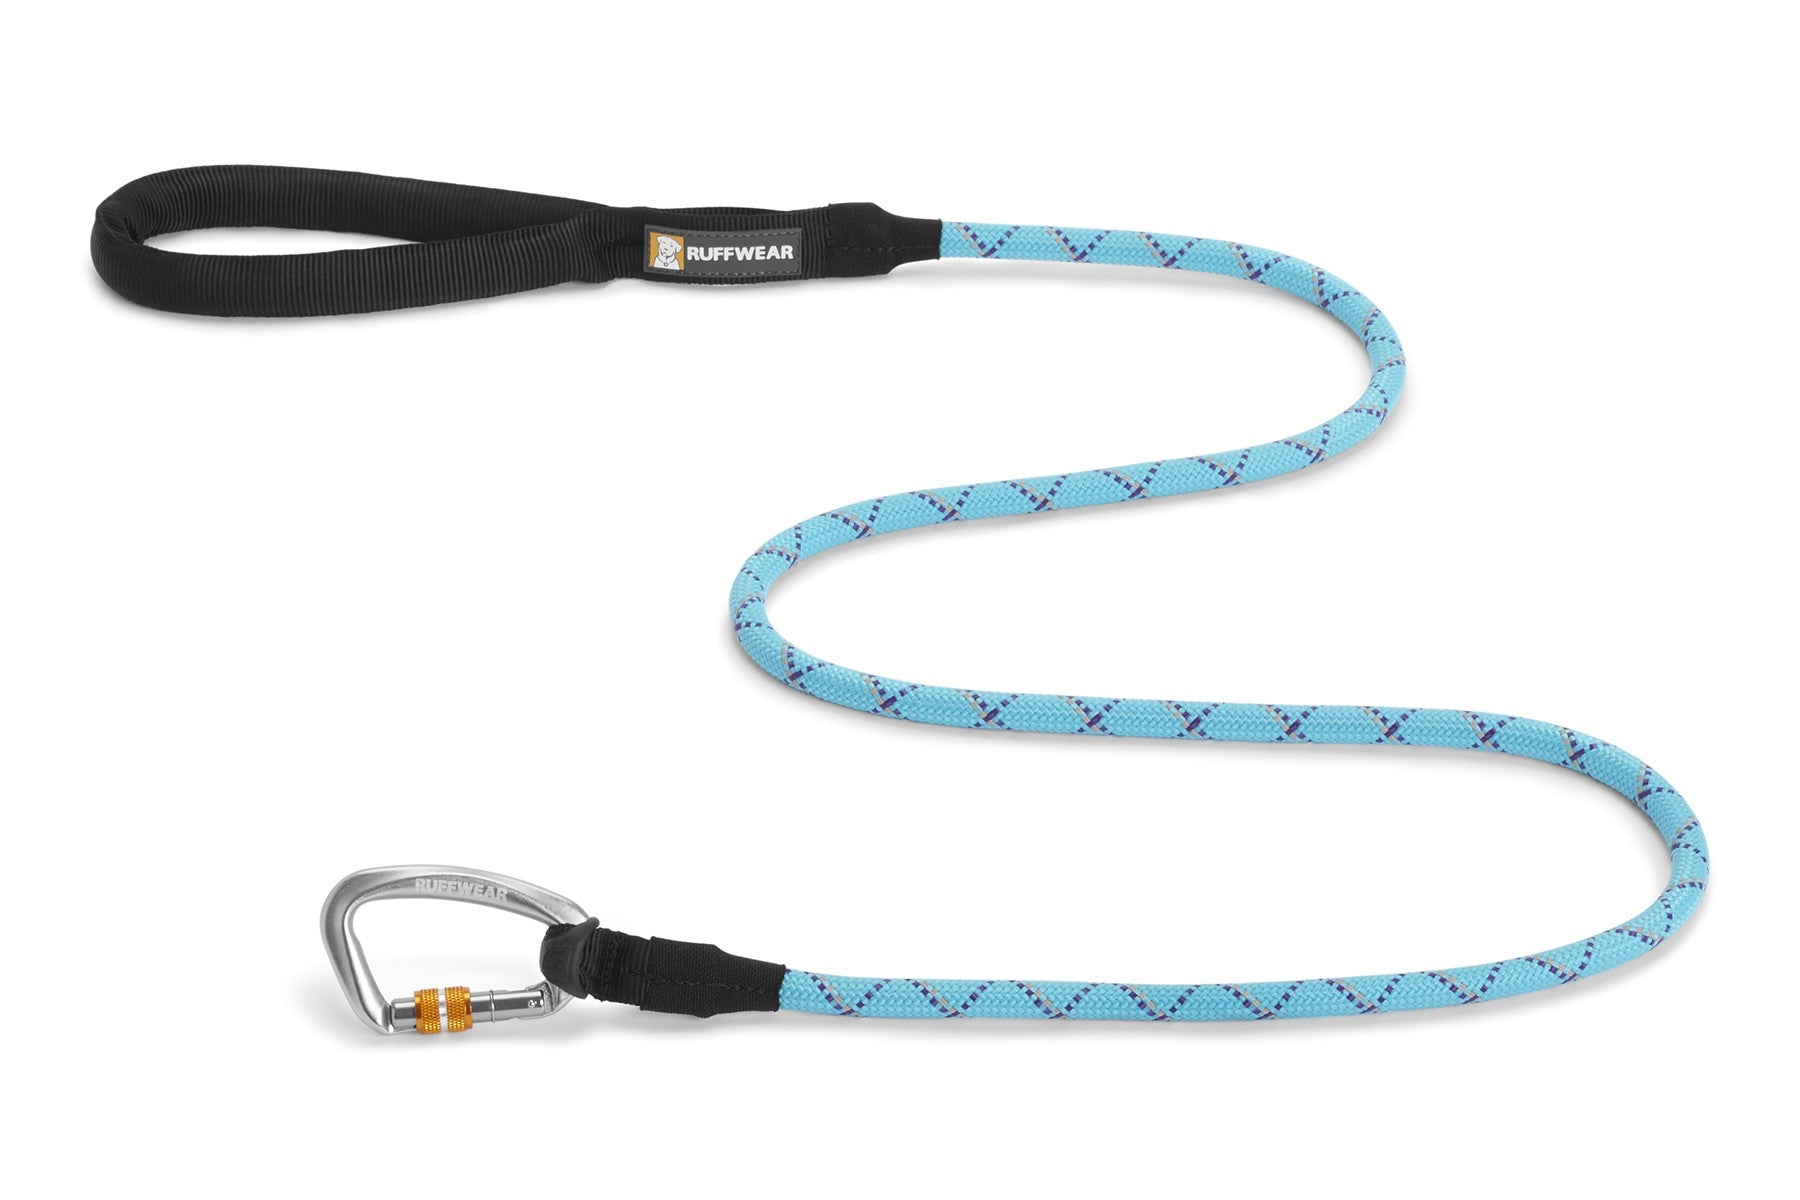 Ruffwear Knot A Leash for Dogs in Blue Atoll